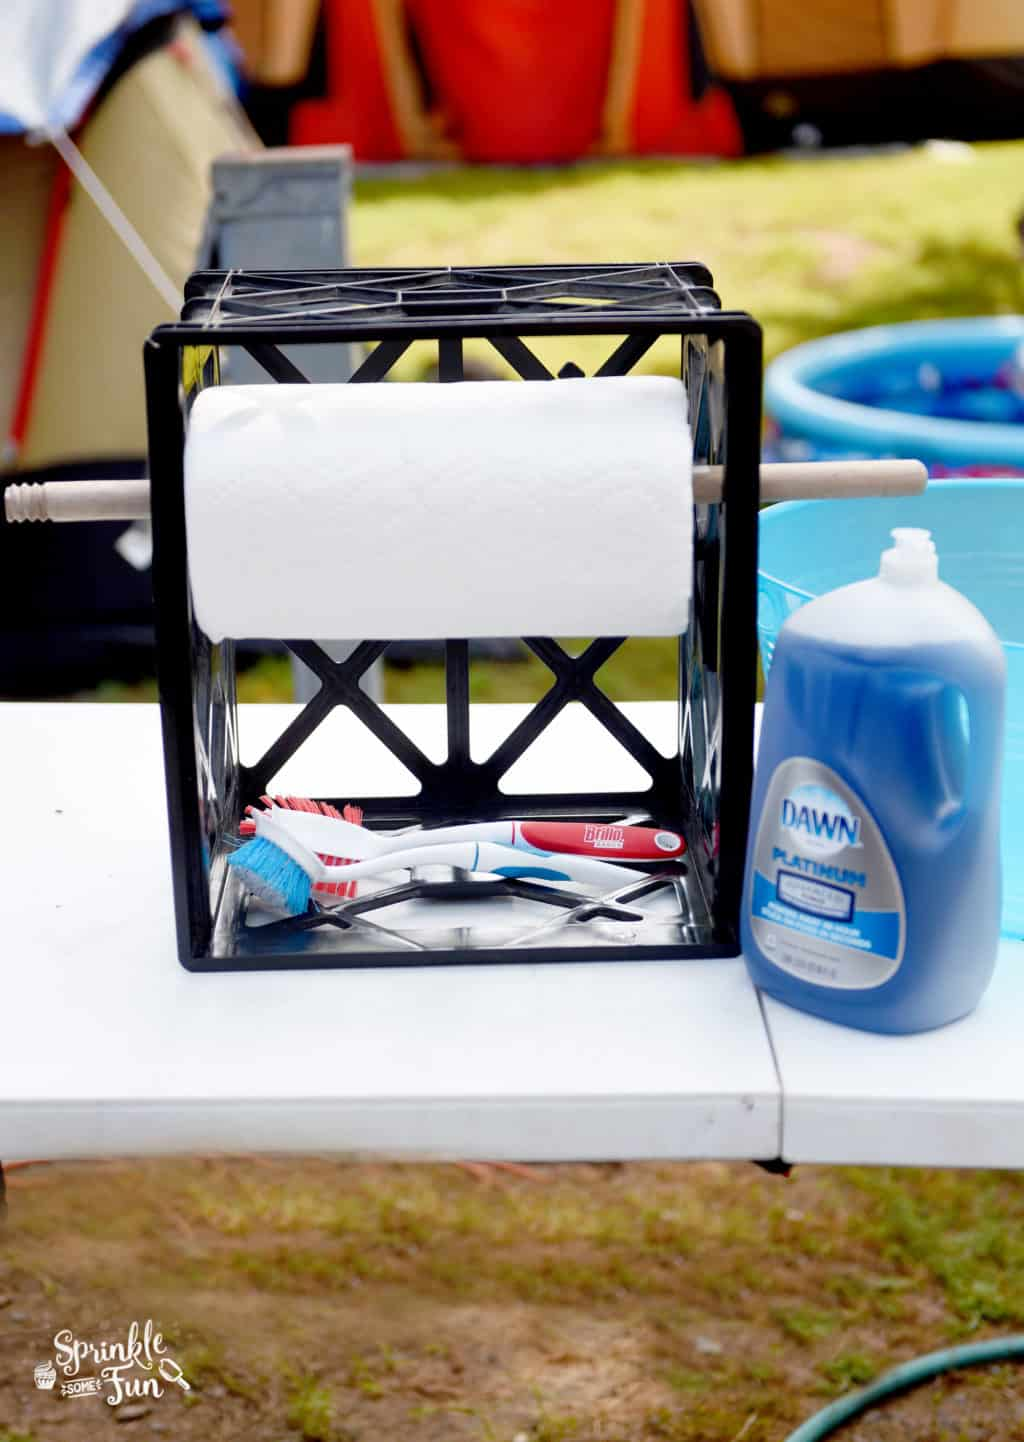 Dishwashing Station For Camping Sprinkle Some Fun